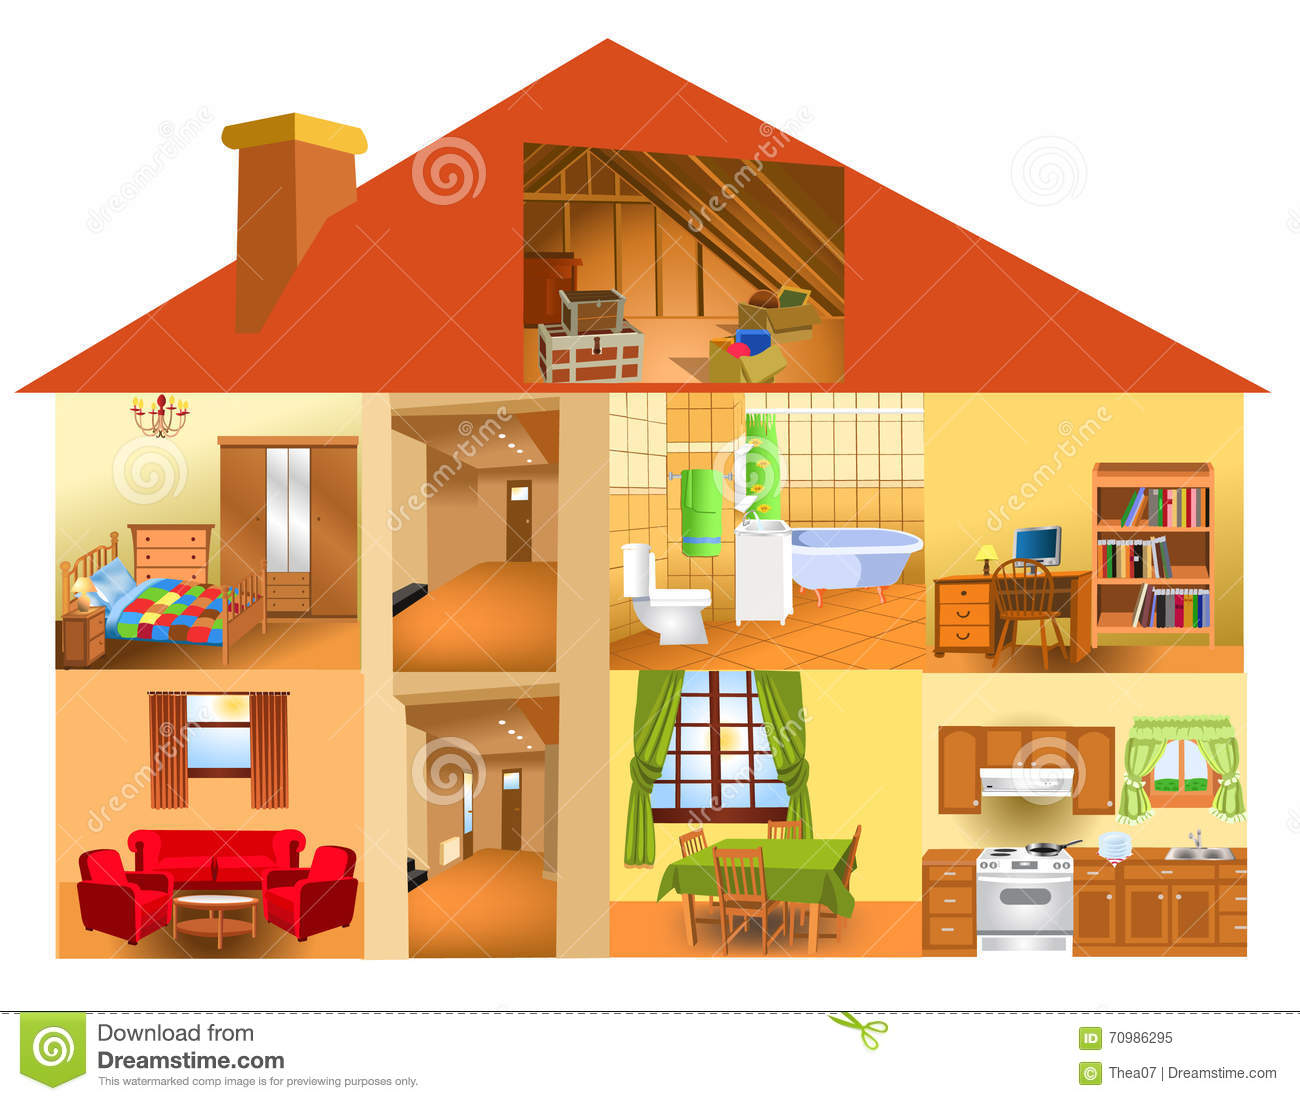 Parts of the house stock vector. Image of computer, house ...